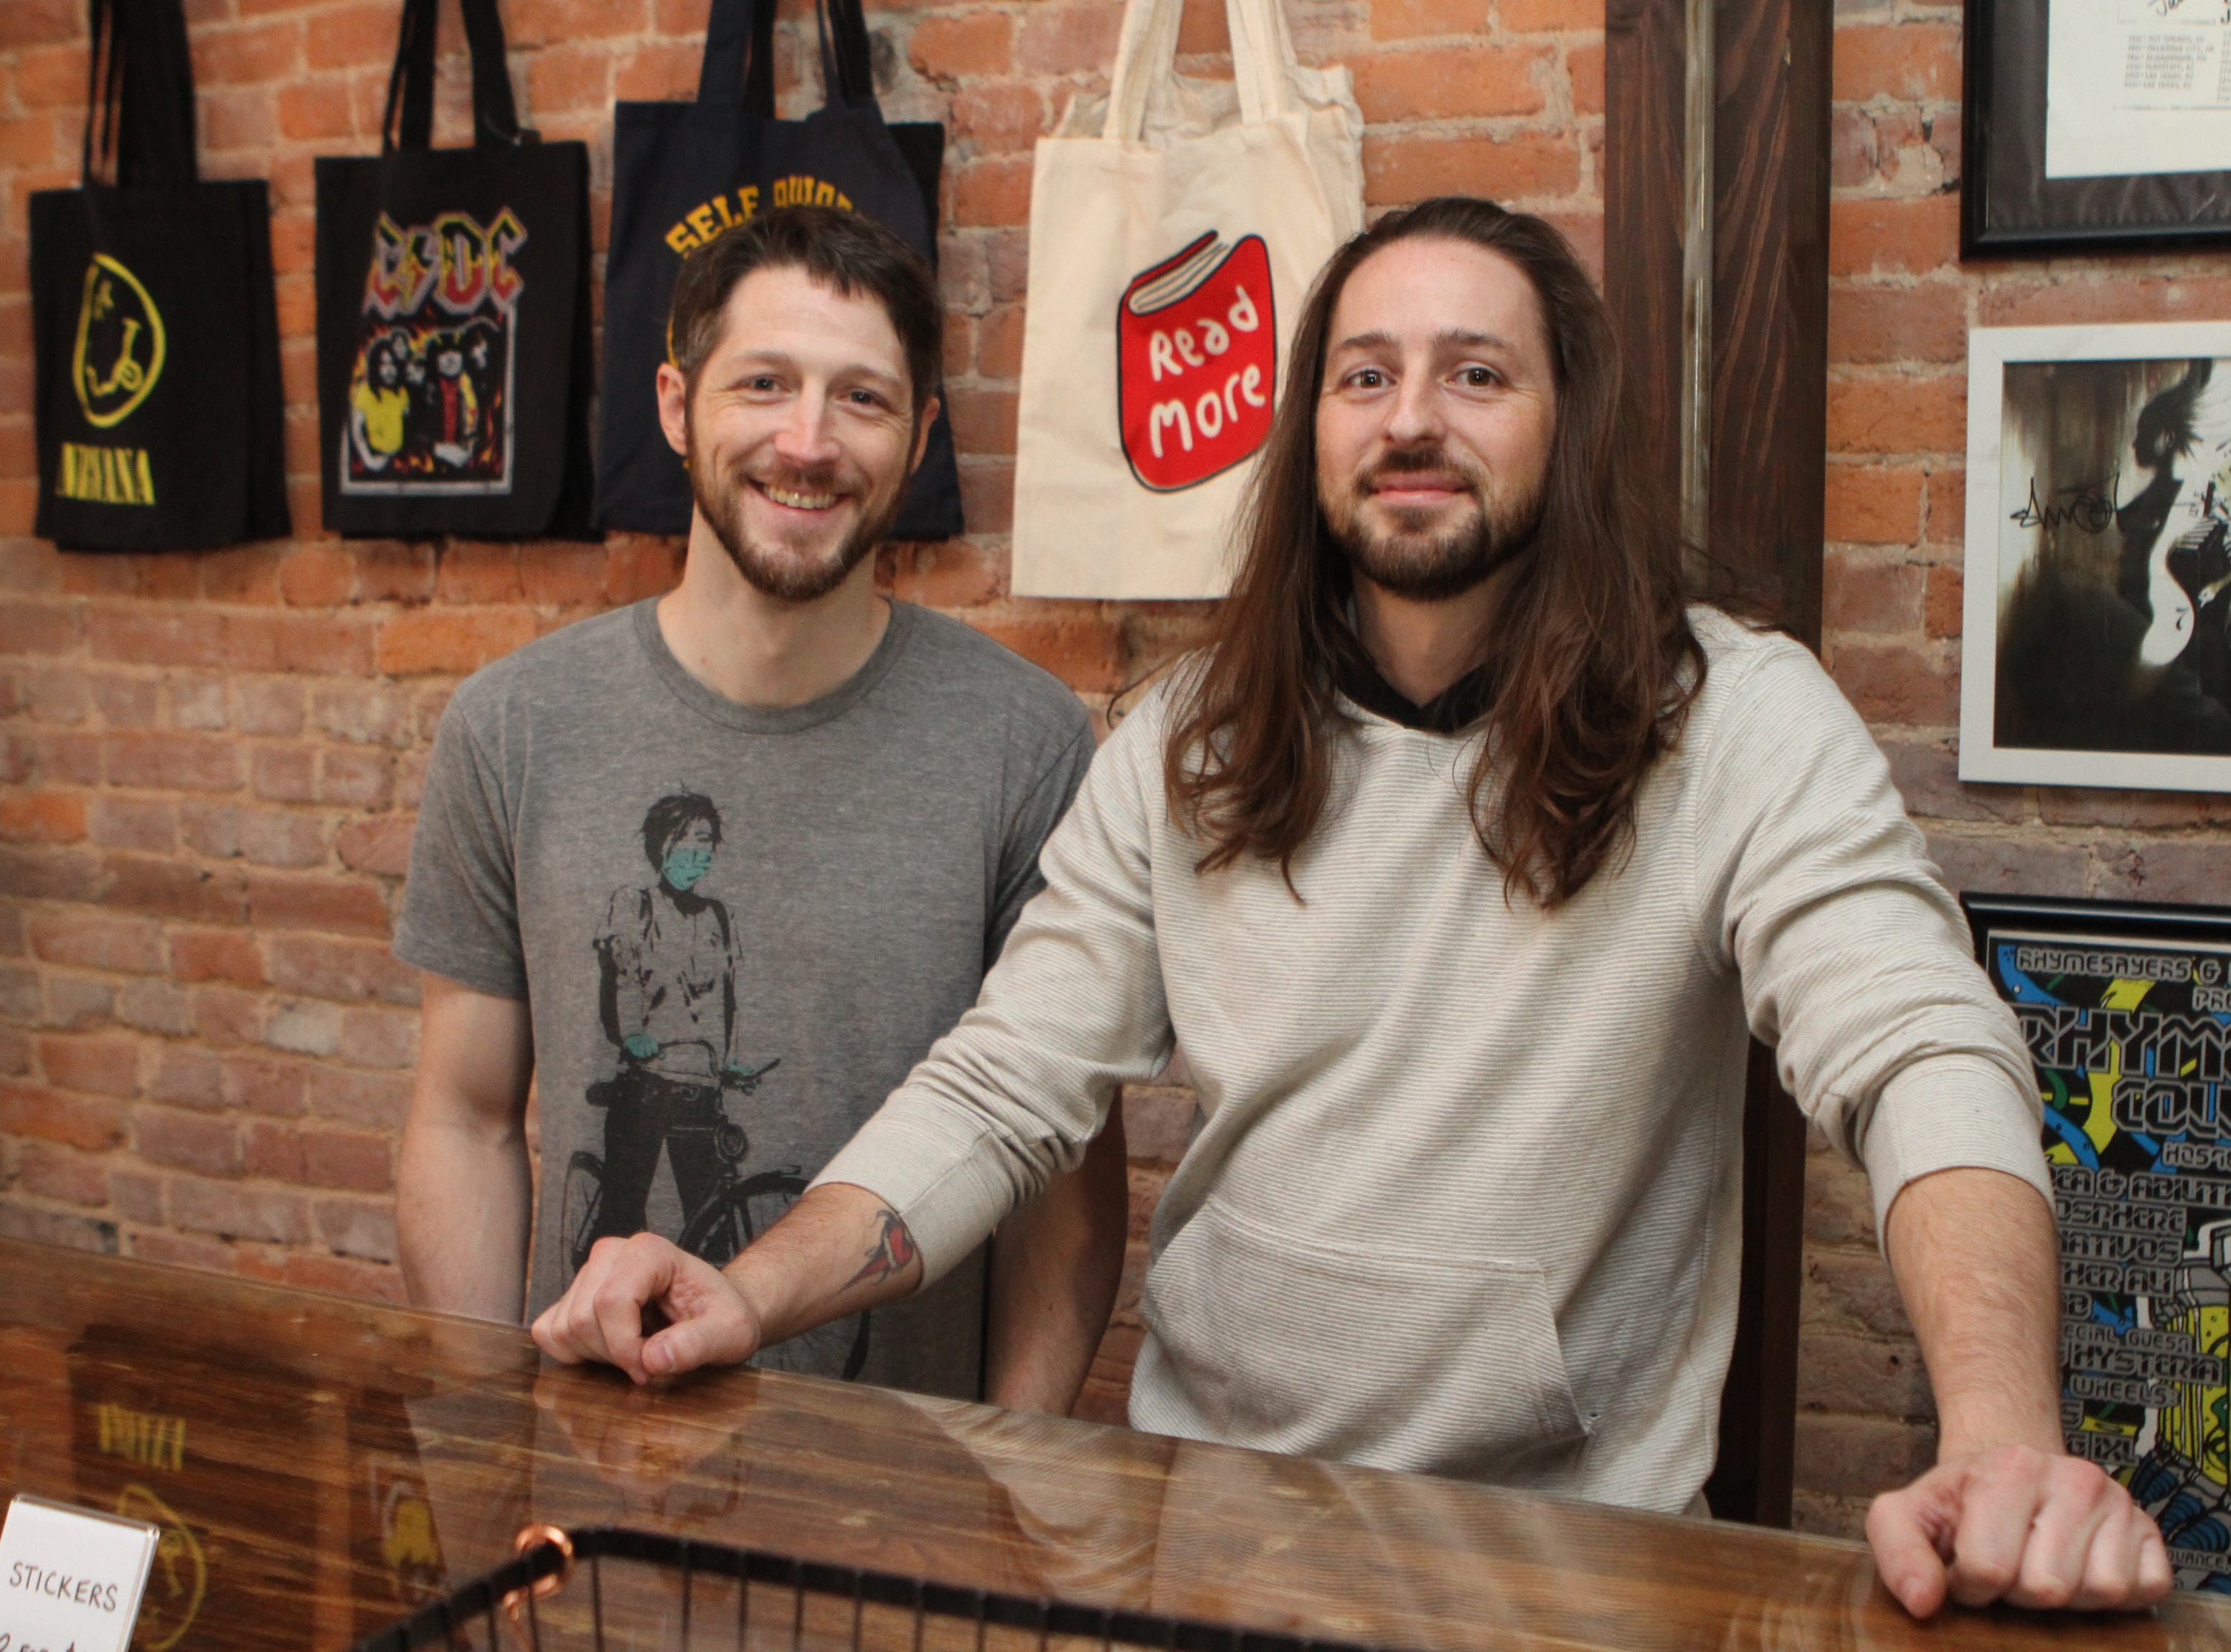 Matt and Tony Shrum of AndVinyl, a shop selling new and used records, which has its grand opening on Saturday, Nov. 24, during Small Business Saturday.